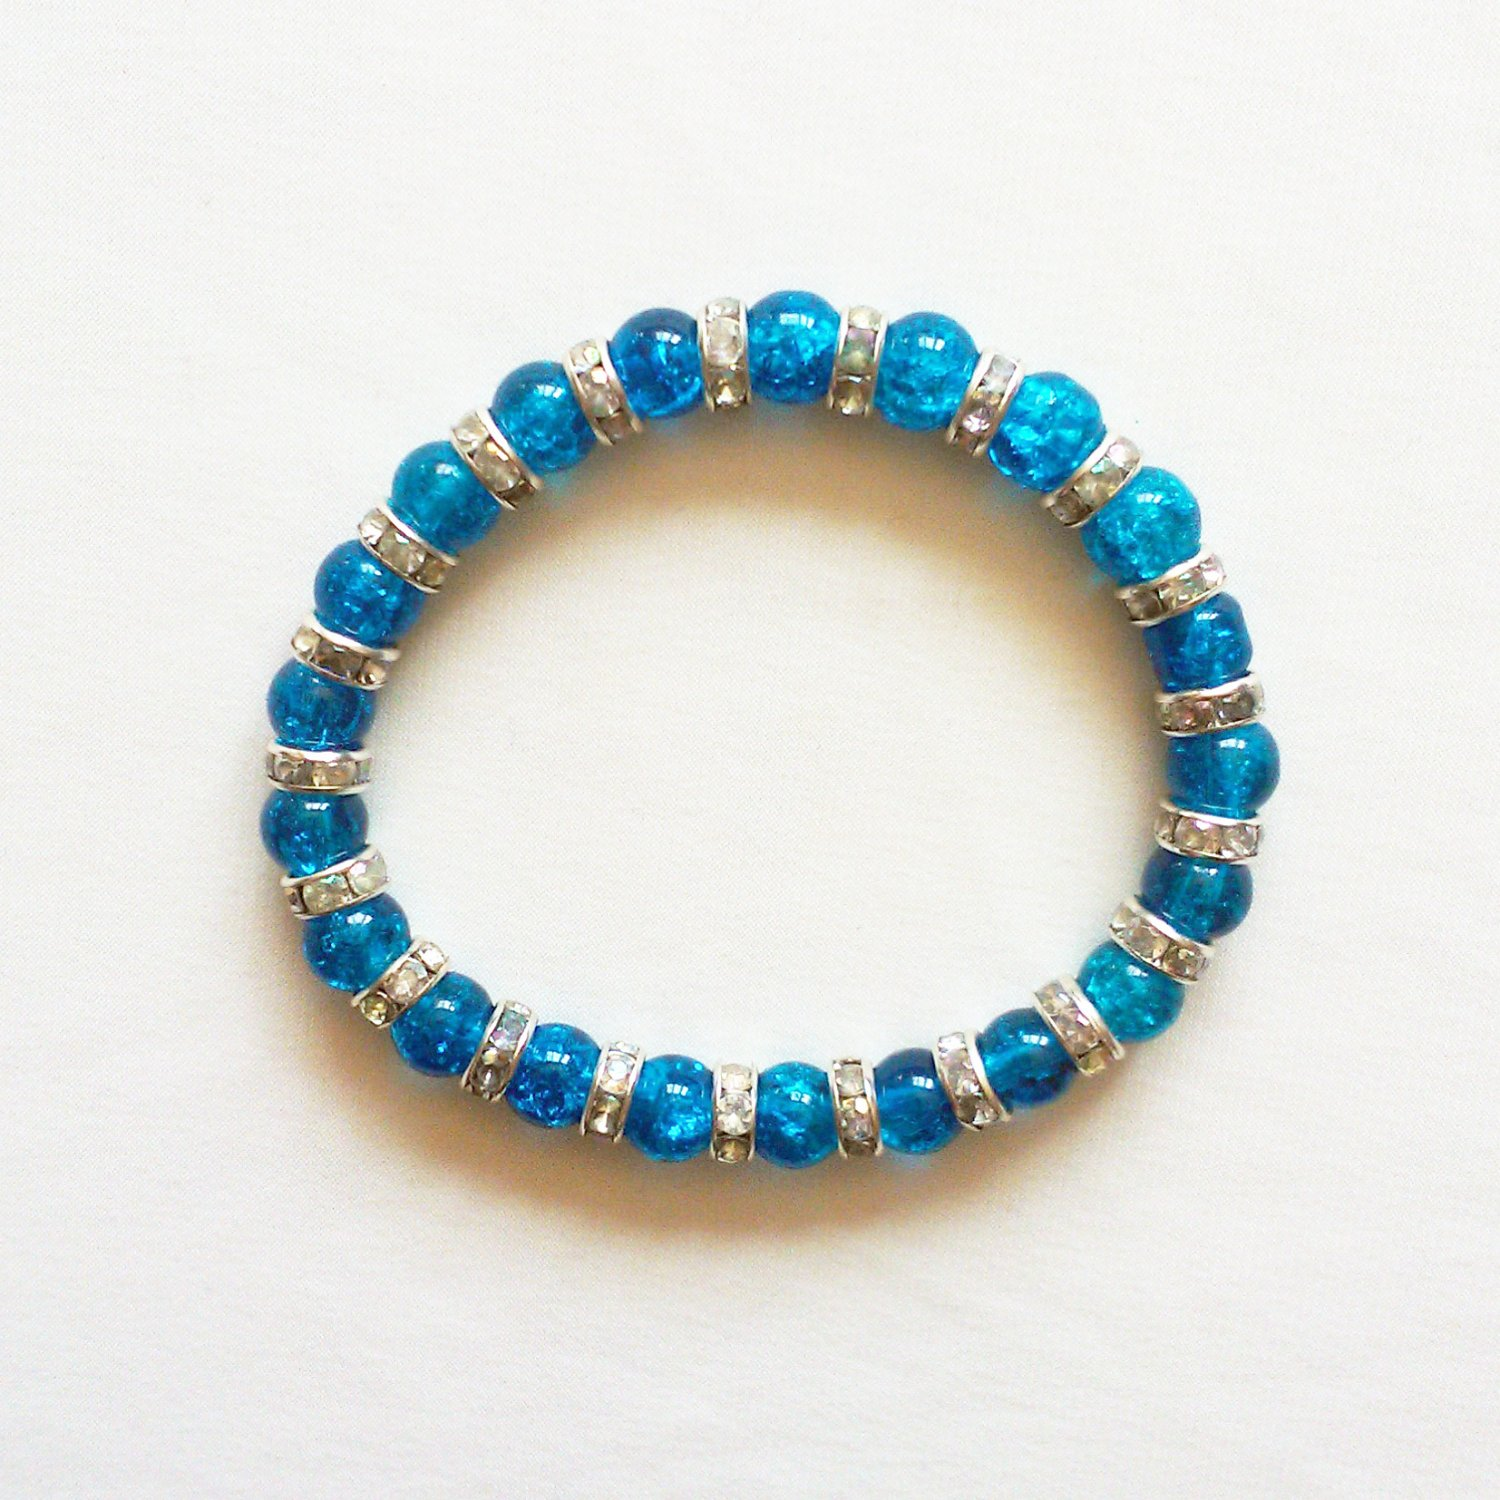 Blue and Silver Glass and Crystal Stretchy Bracelet